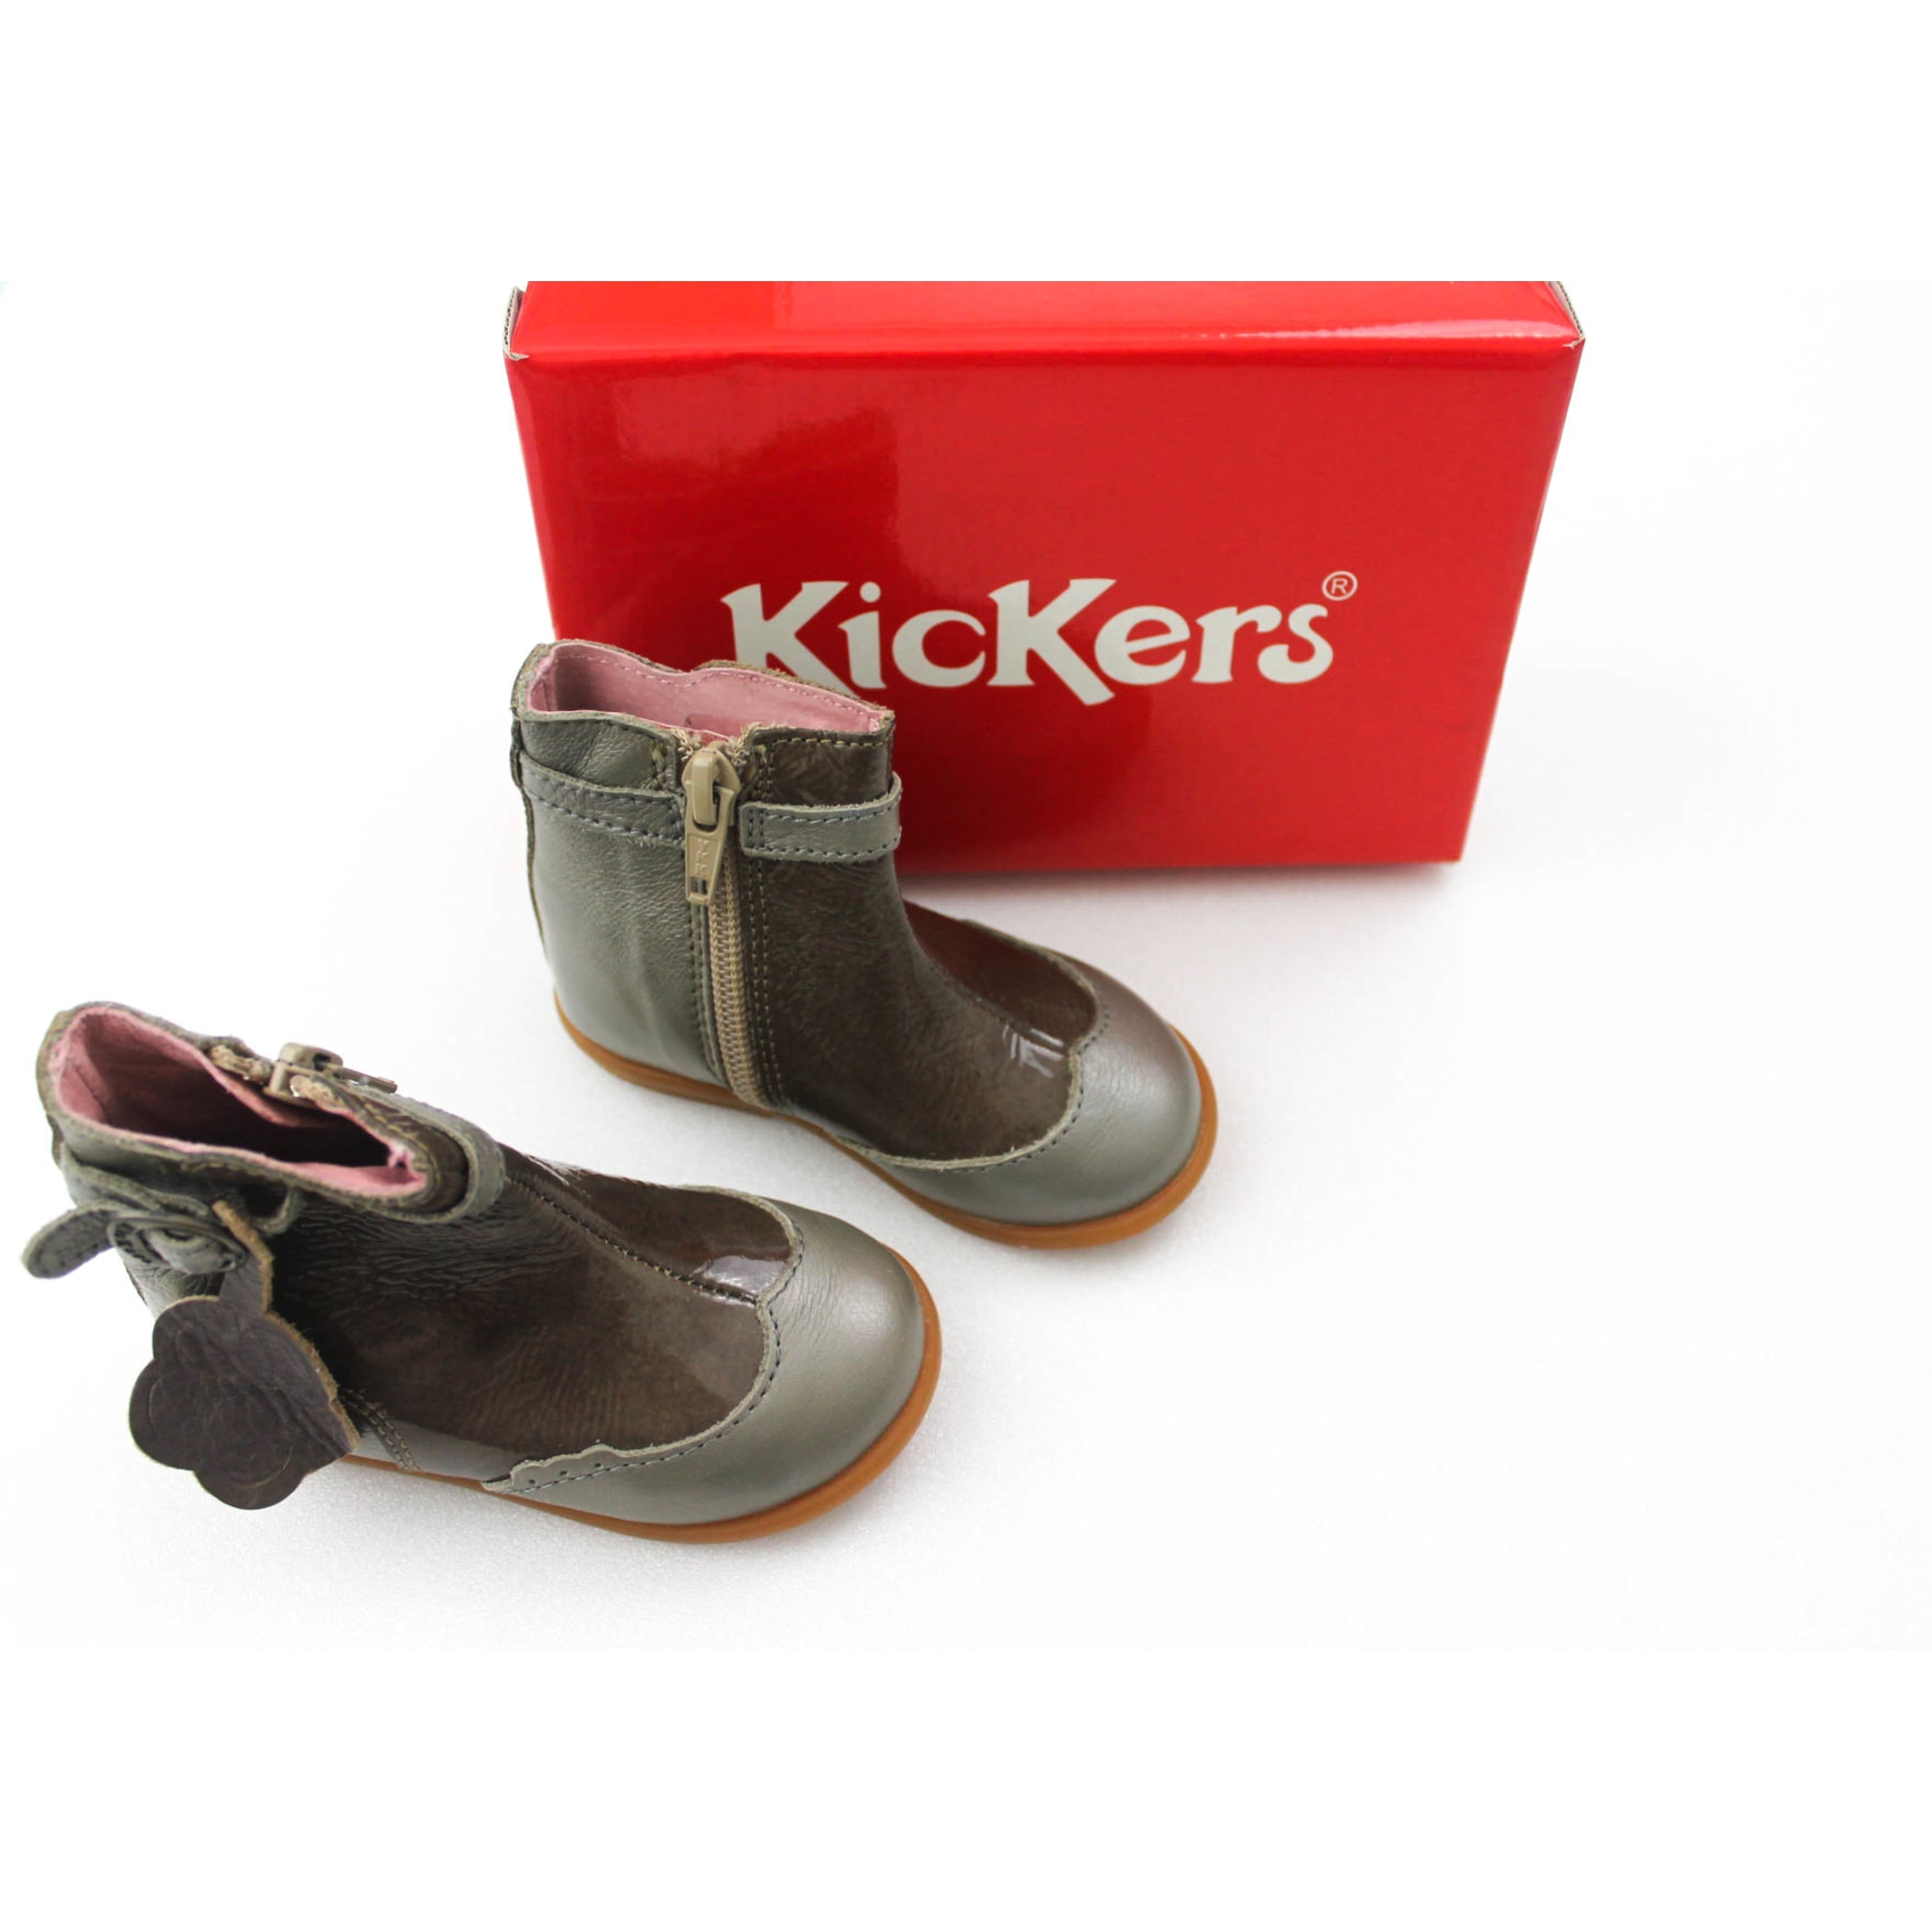 53728c49d77 Bottines KICKERS 12 mois gris perle - 6576183